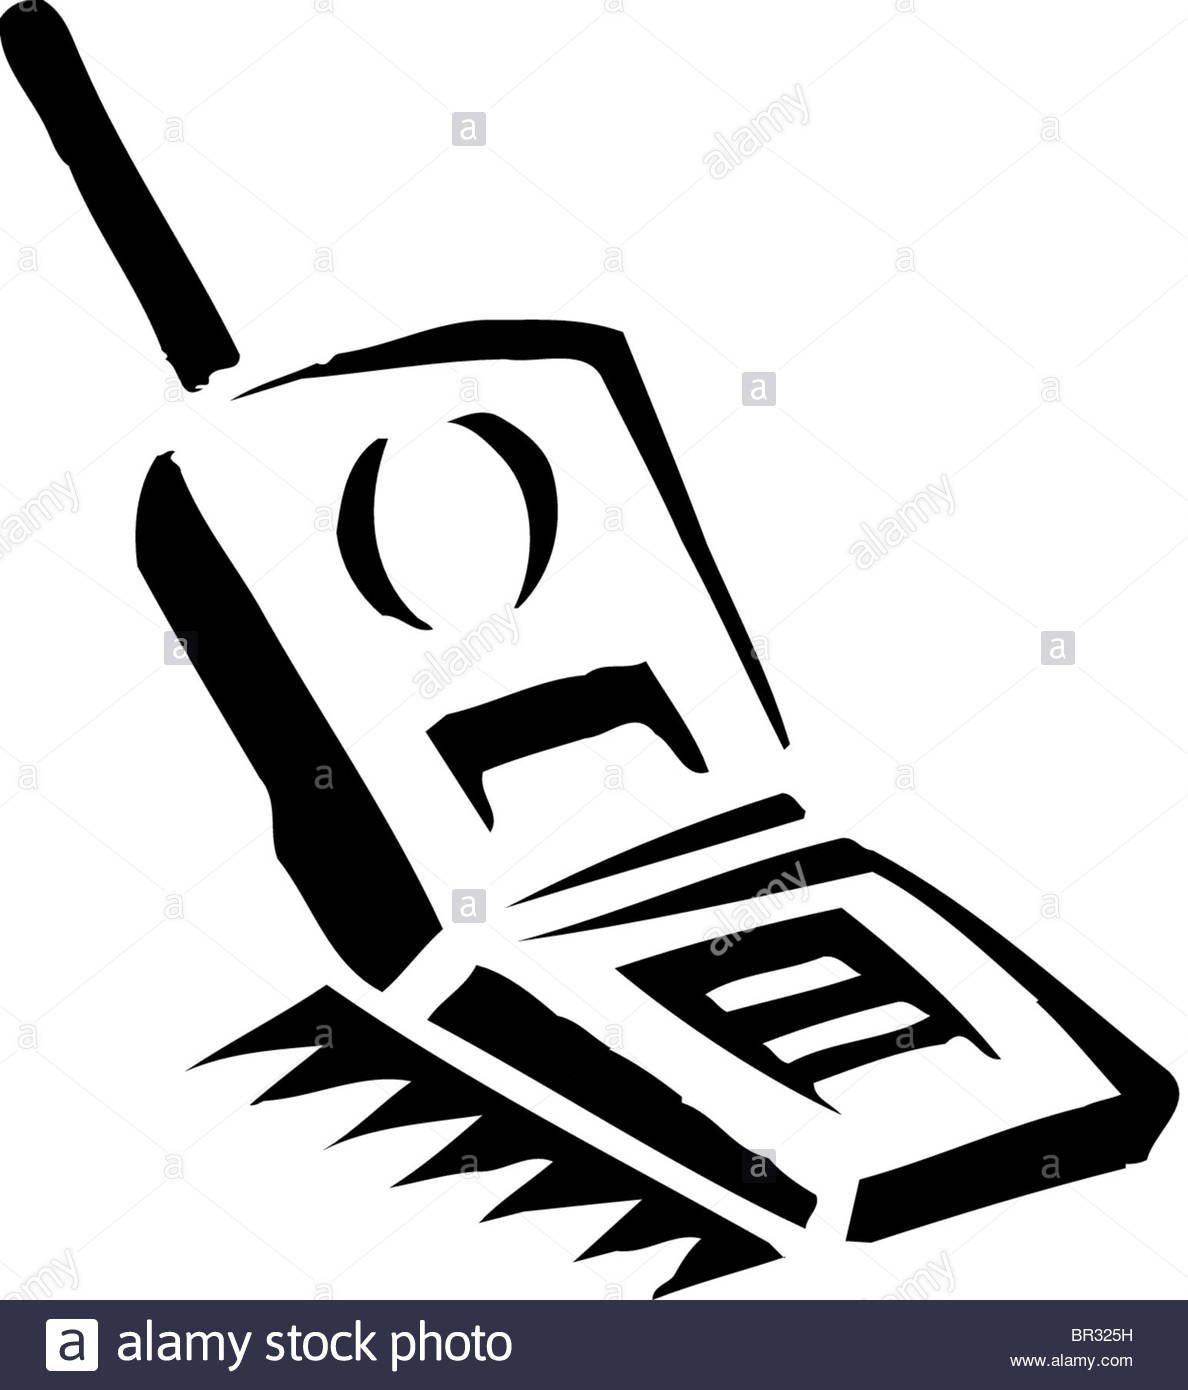 1188x1390 A Black And White Drawing Of A Flip Phone Stock Photo, Royalty